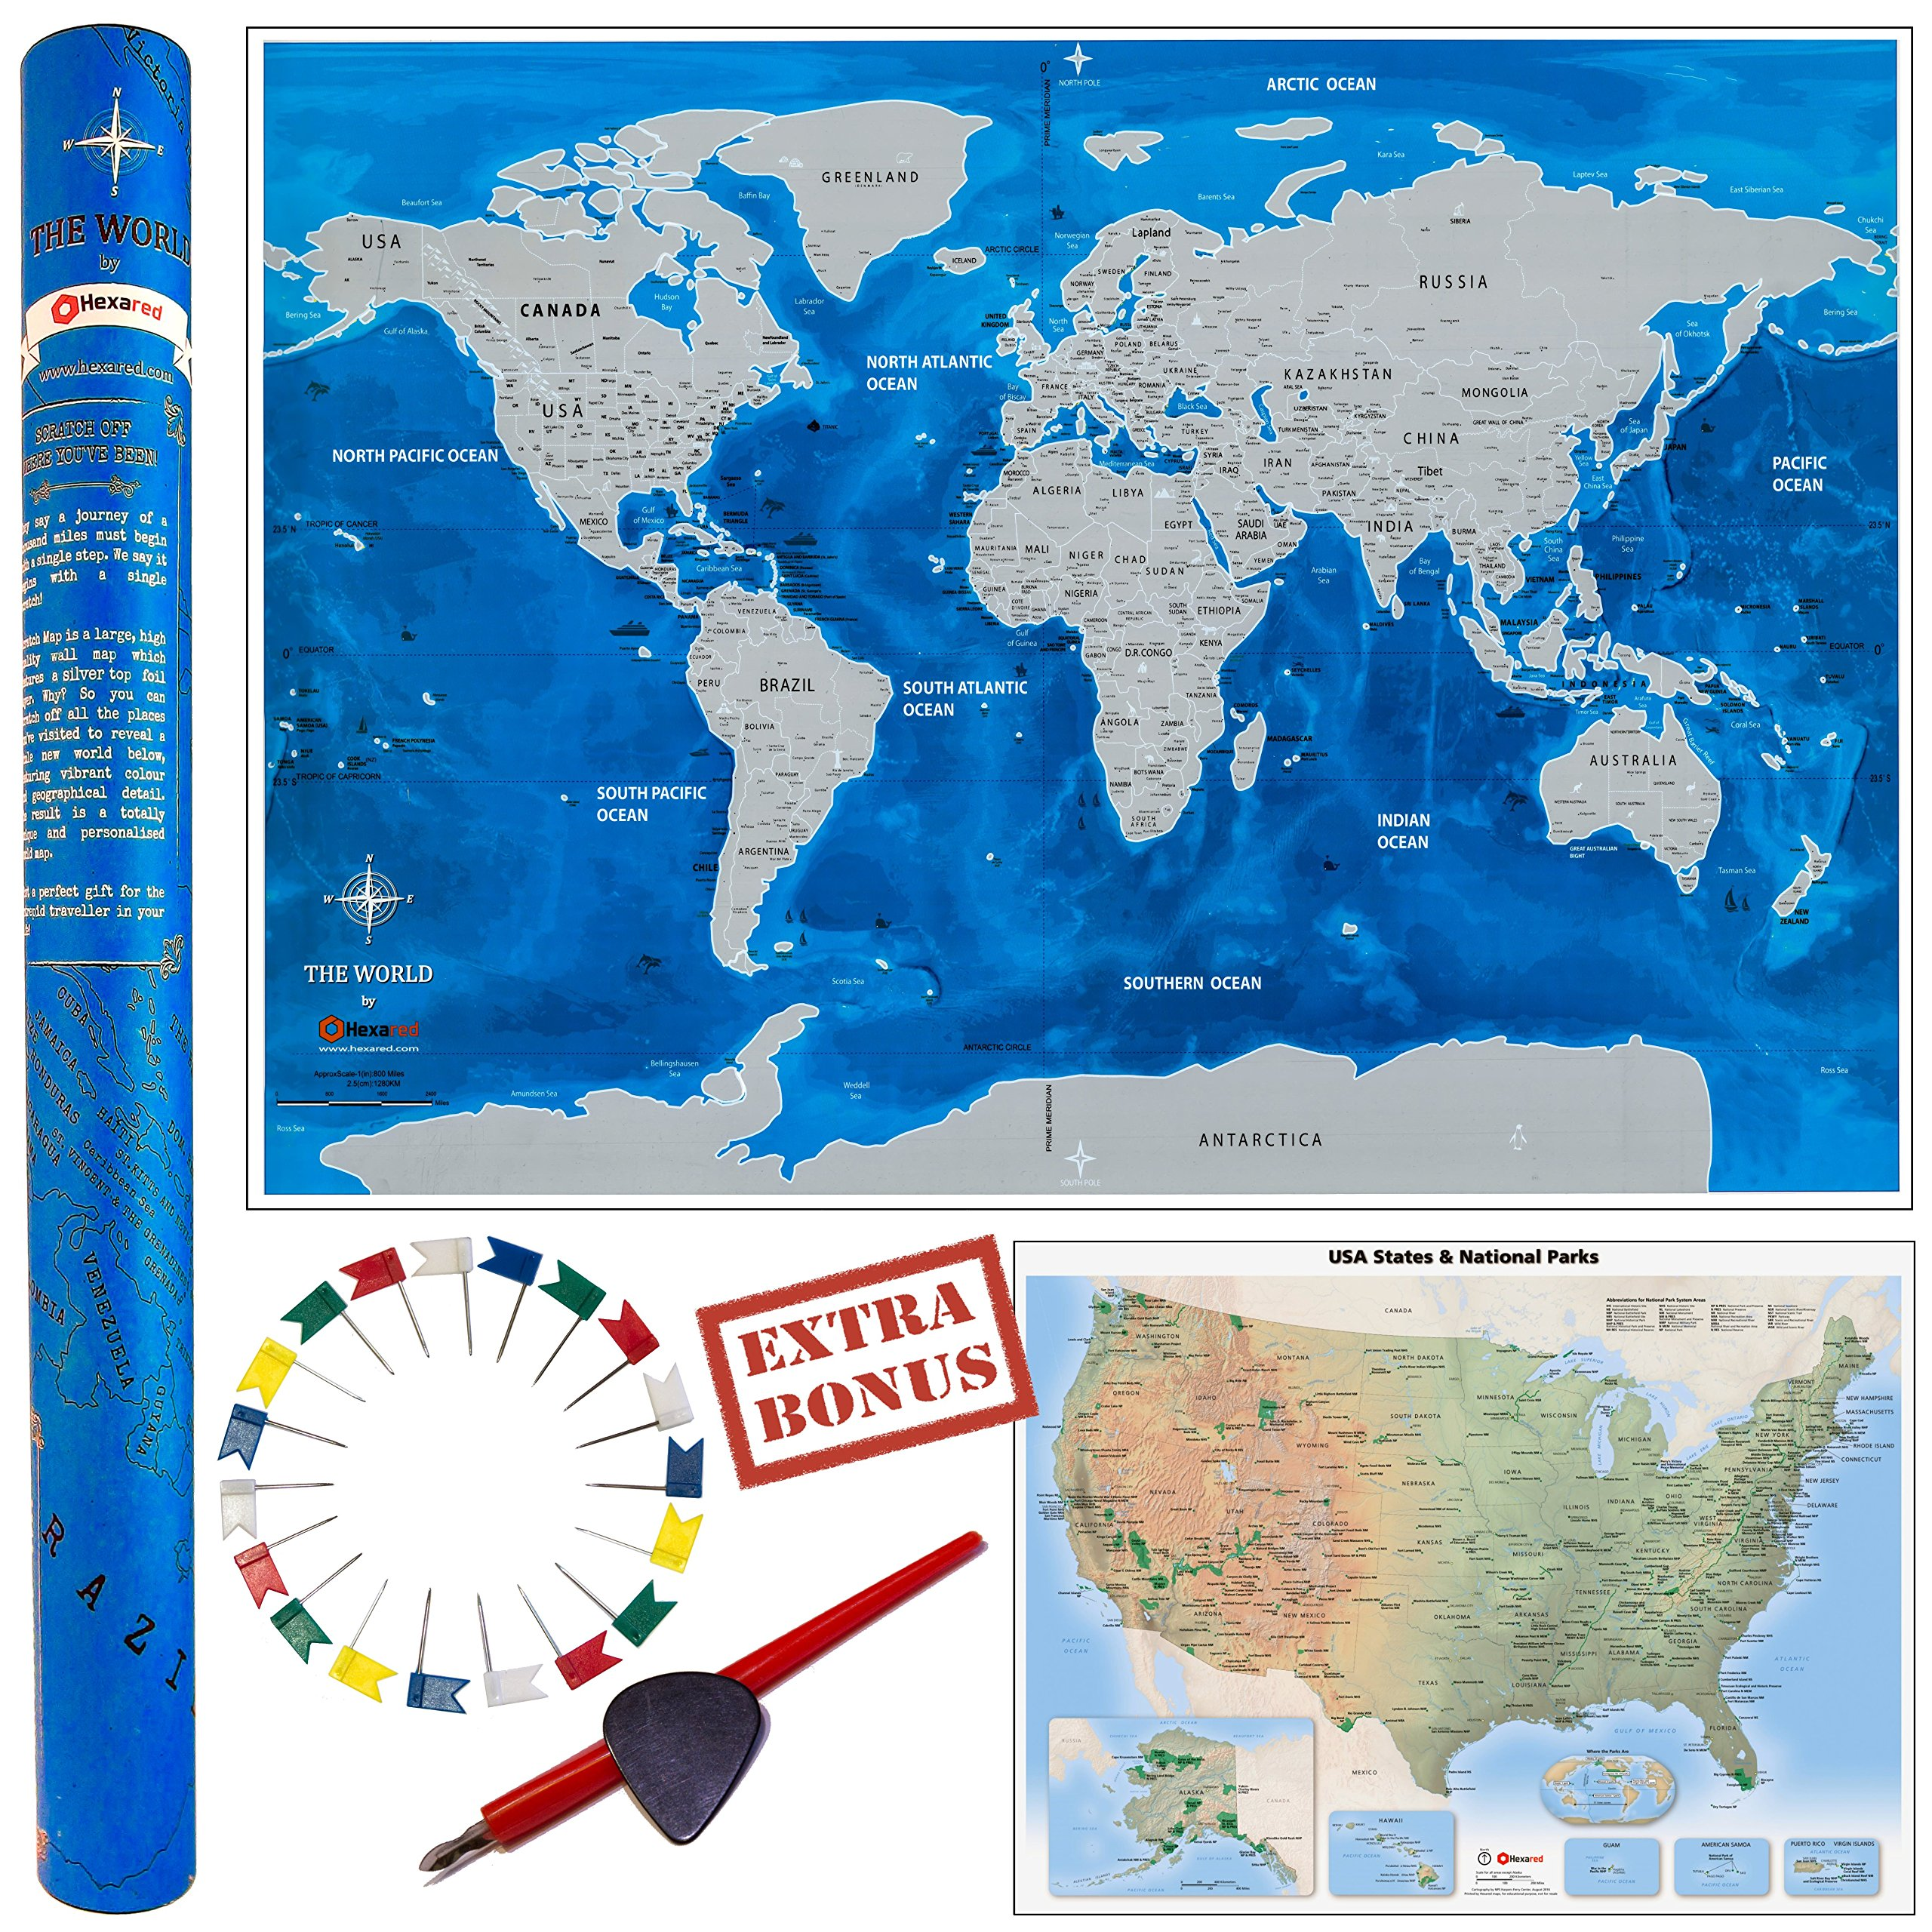 Scratch off world map laminated watercolor 2 types scratchers 30 scratch off world map laminated watercolor 2 types scratchers 30 flag pins gumiabroncs Images